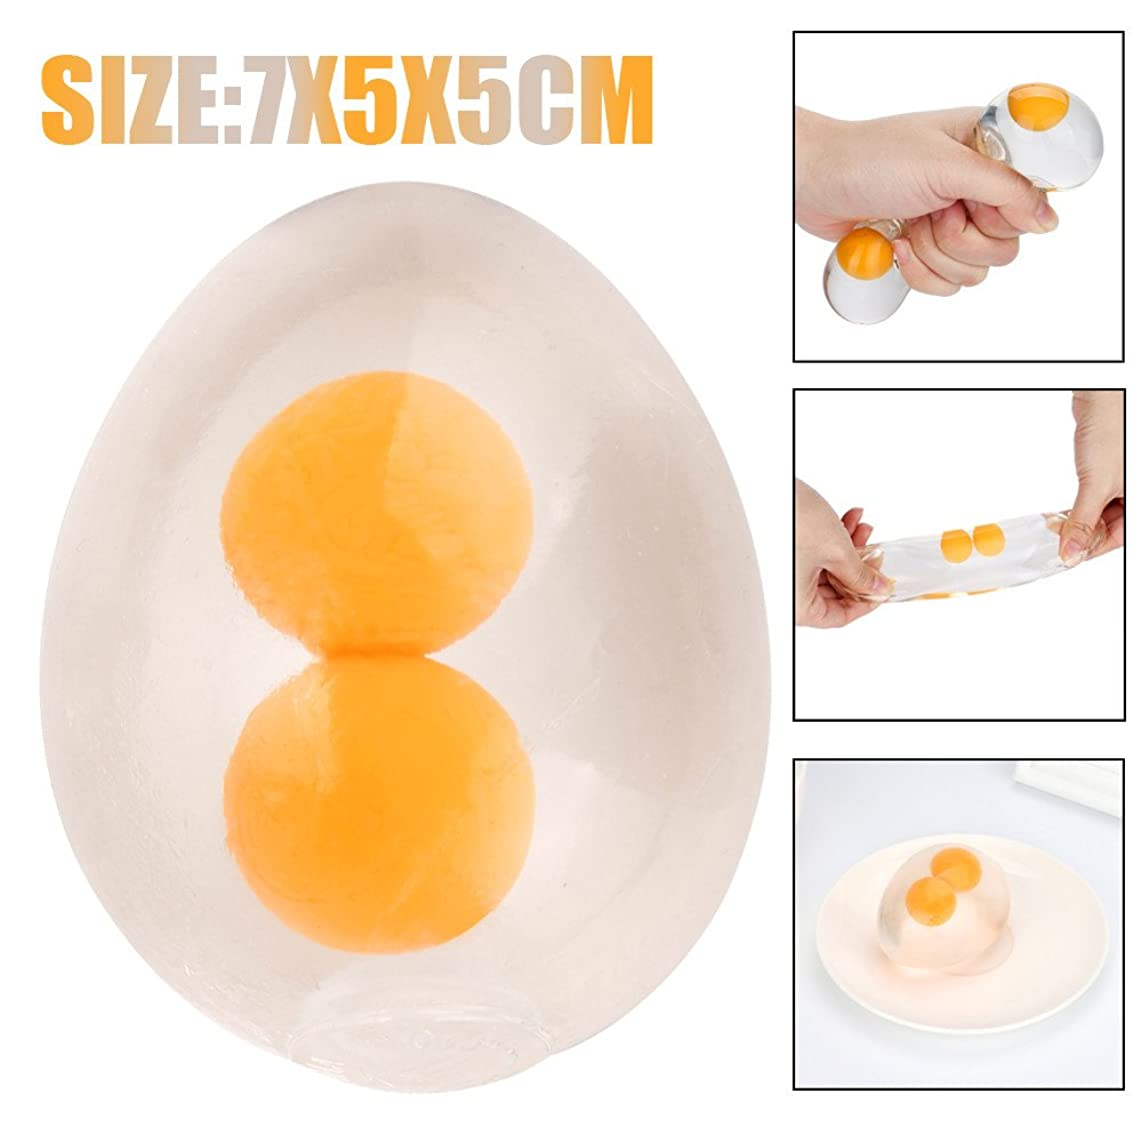 WFFO Slow Rising Squishy Toy, Funky Egg Splat Ball Squishy Toys Stress Relief Eggs Yolk Balls for Children for Kids Party Toys Stress Reliever Toy (Clear)